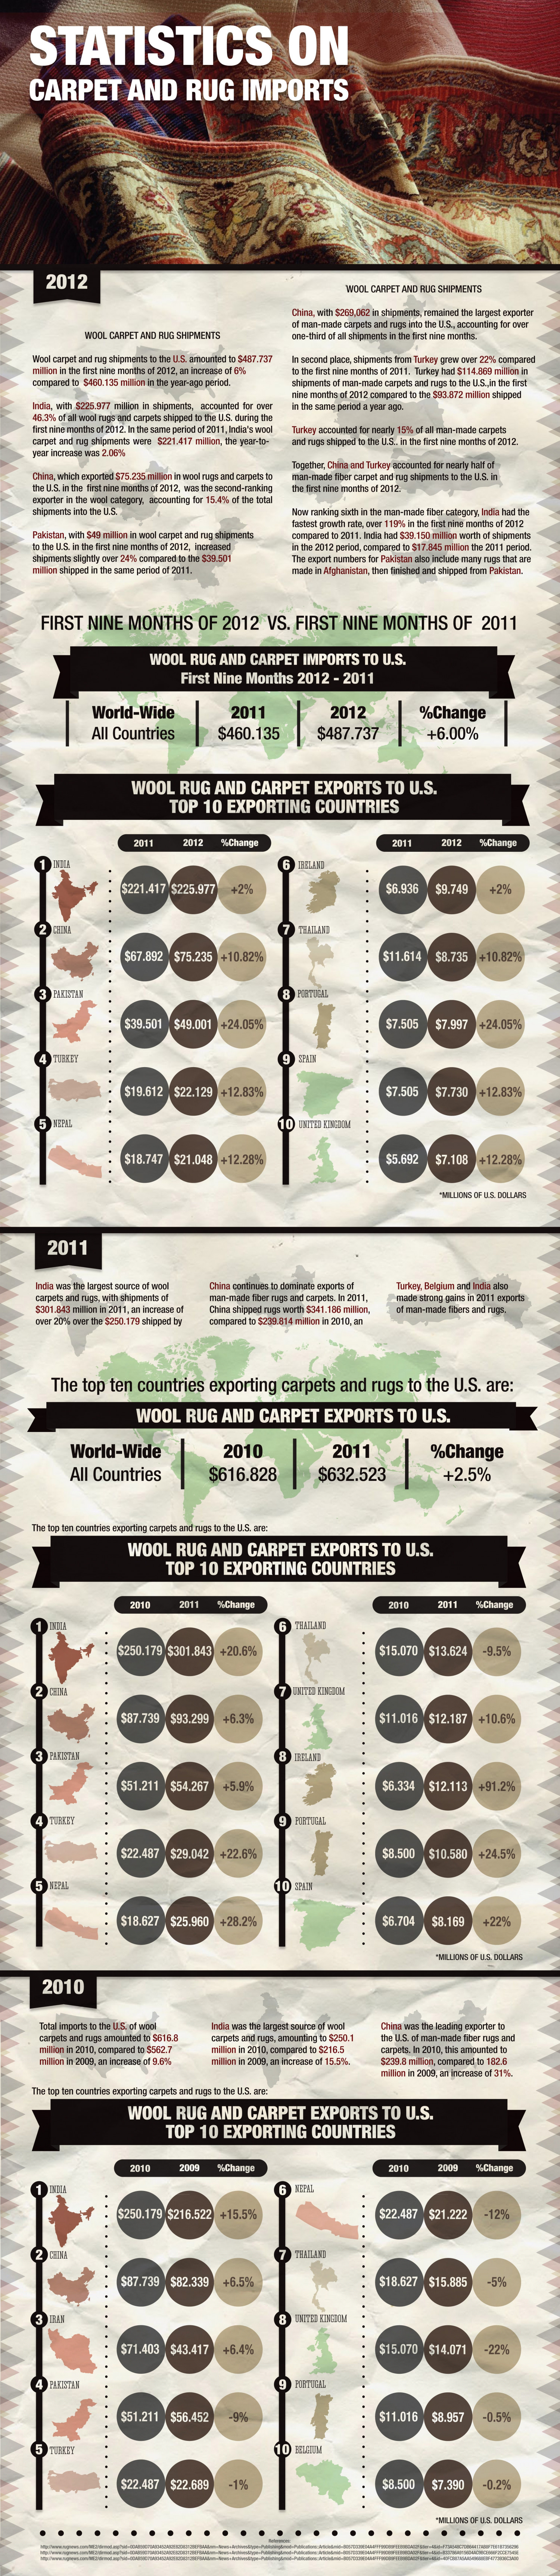 Statistics on Carpet and Rug Infographic